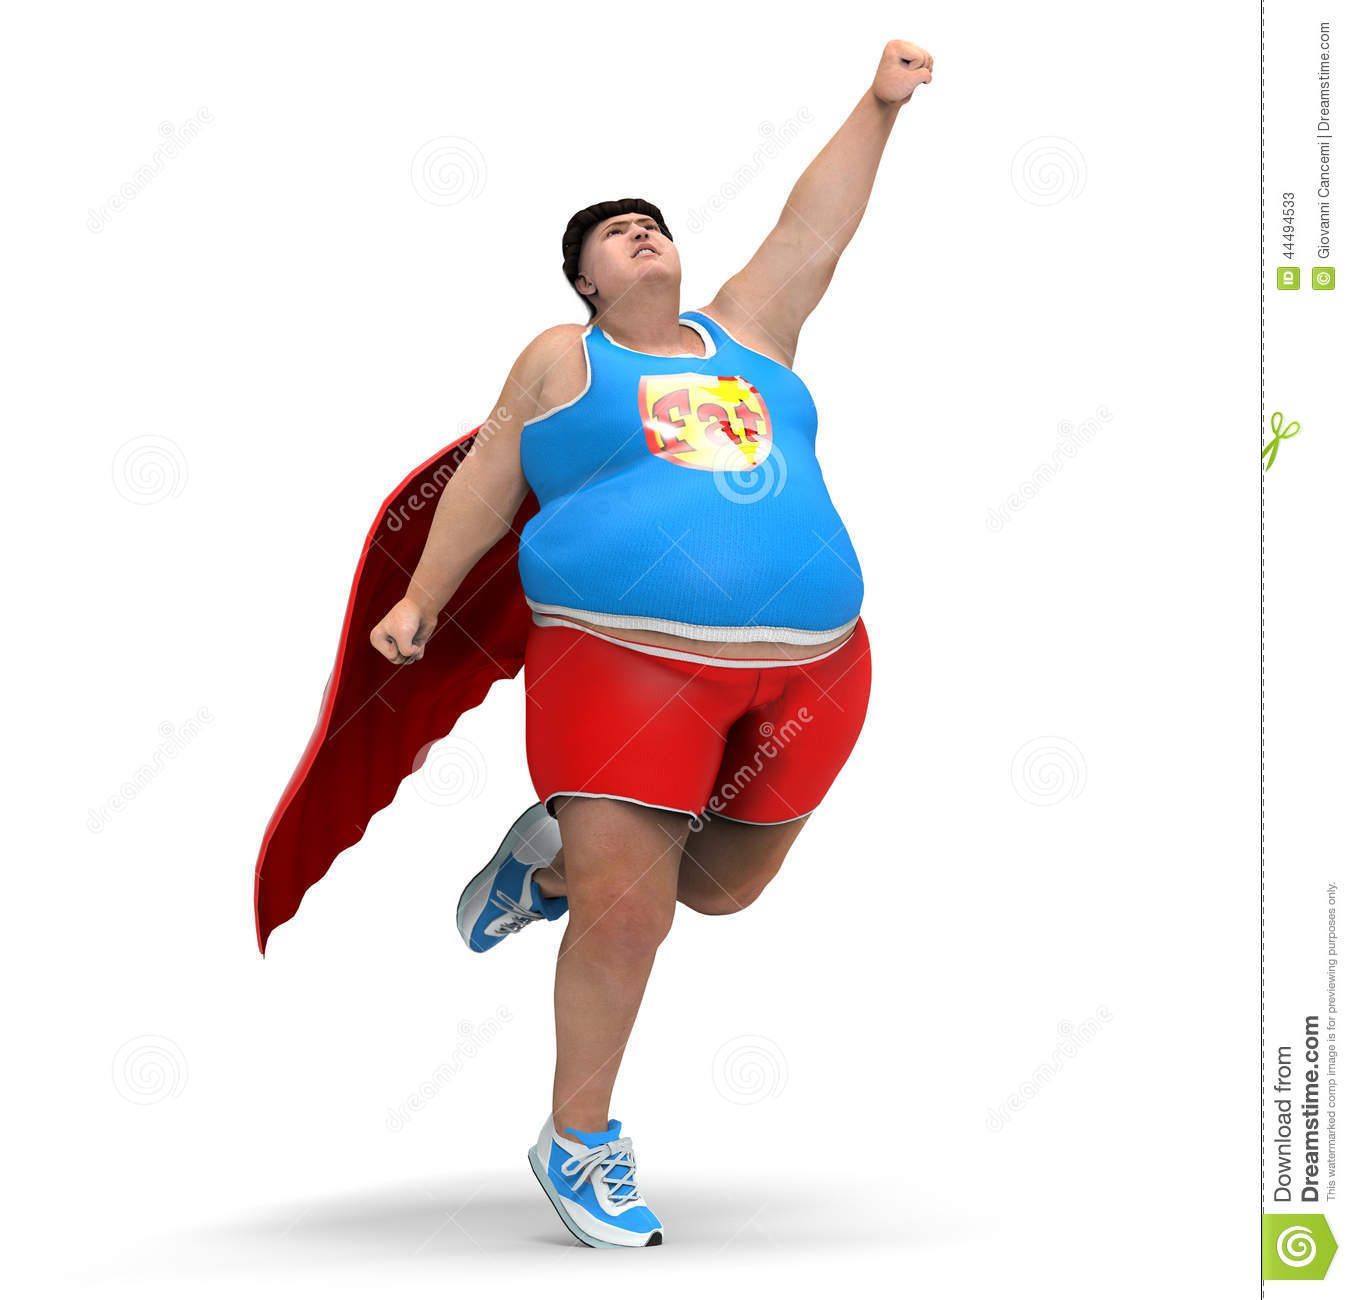 obese superhero stock illustration image 44494533 Superhero Clip Art for Teachers Superhero Clip Art for Teachers